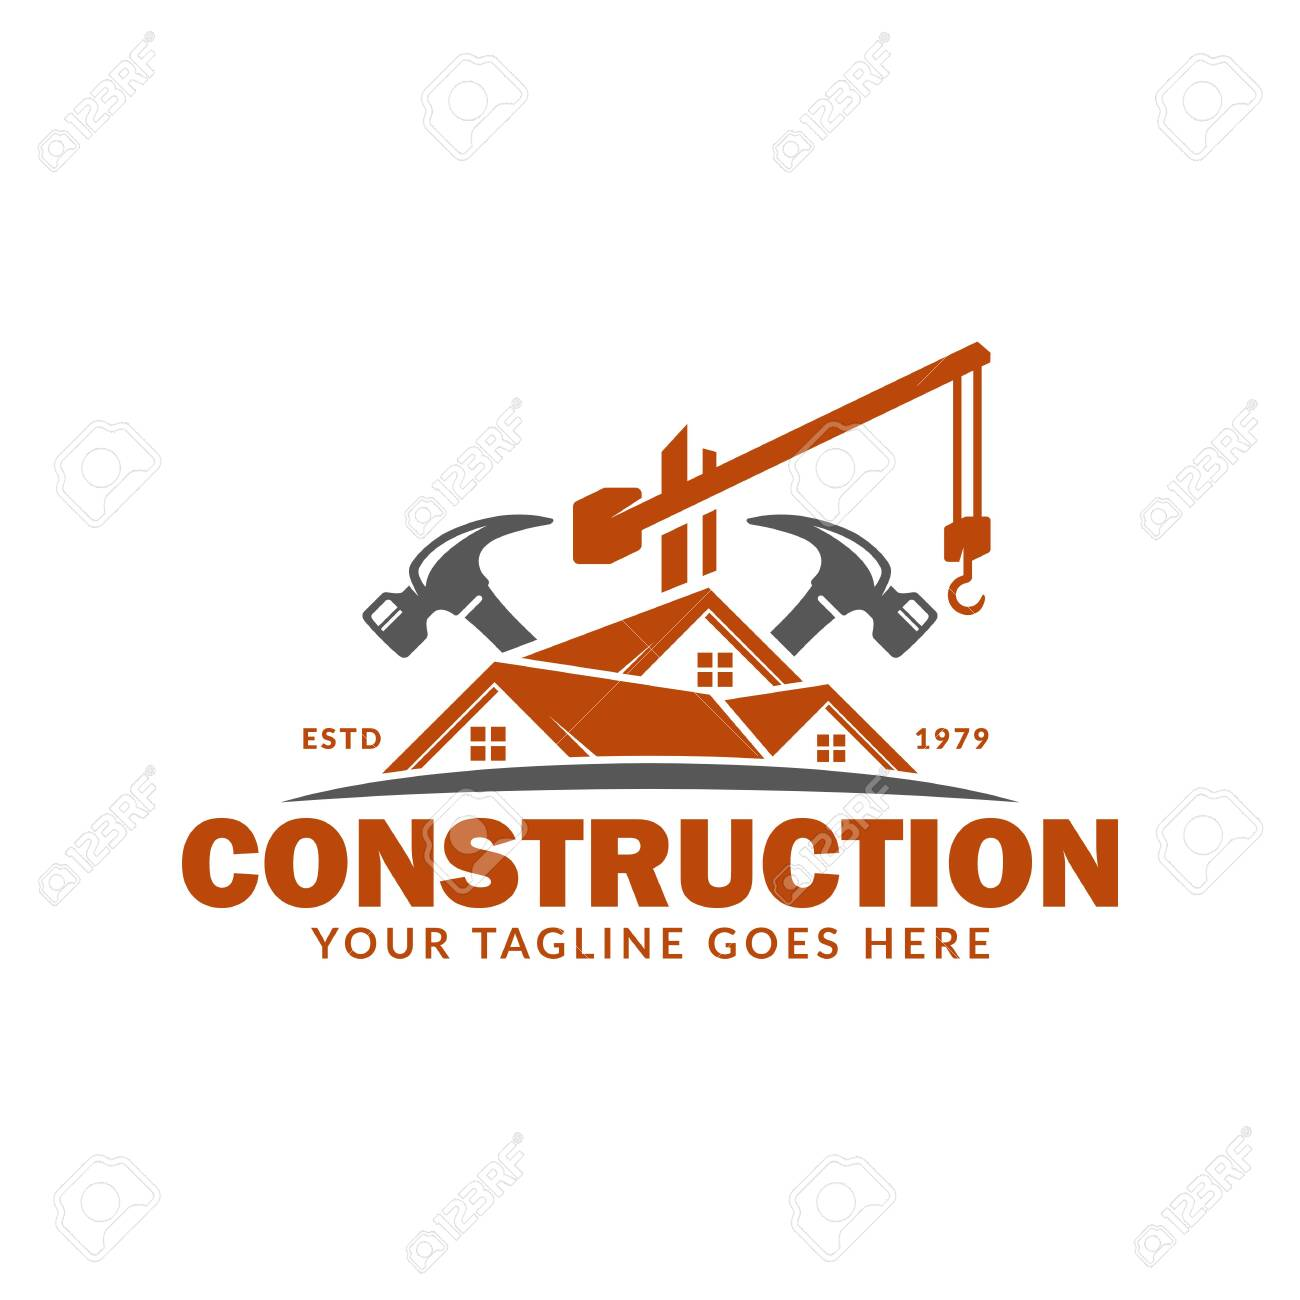 Construction logo template, suitable for construction company brand, vector format and easy to edit - 129794574